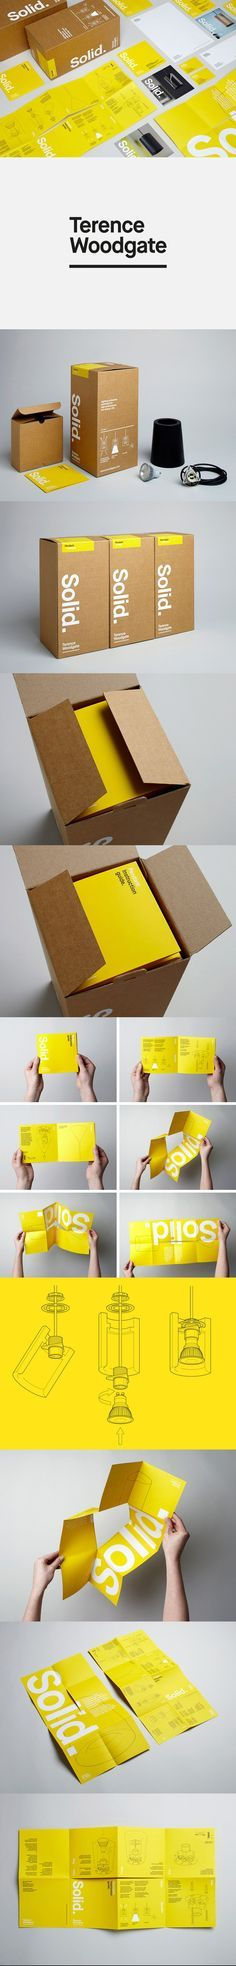 Terence Woodgate packaging designed by Charlie Smith Design